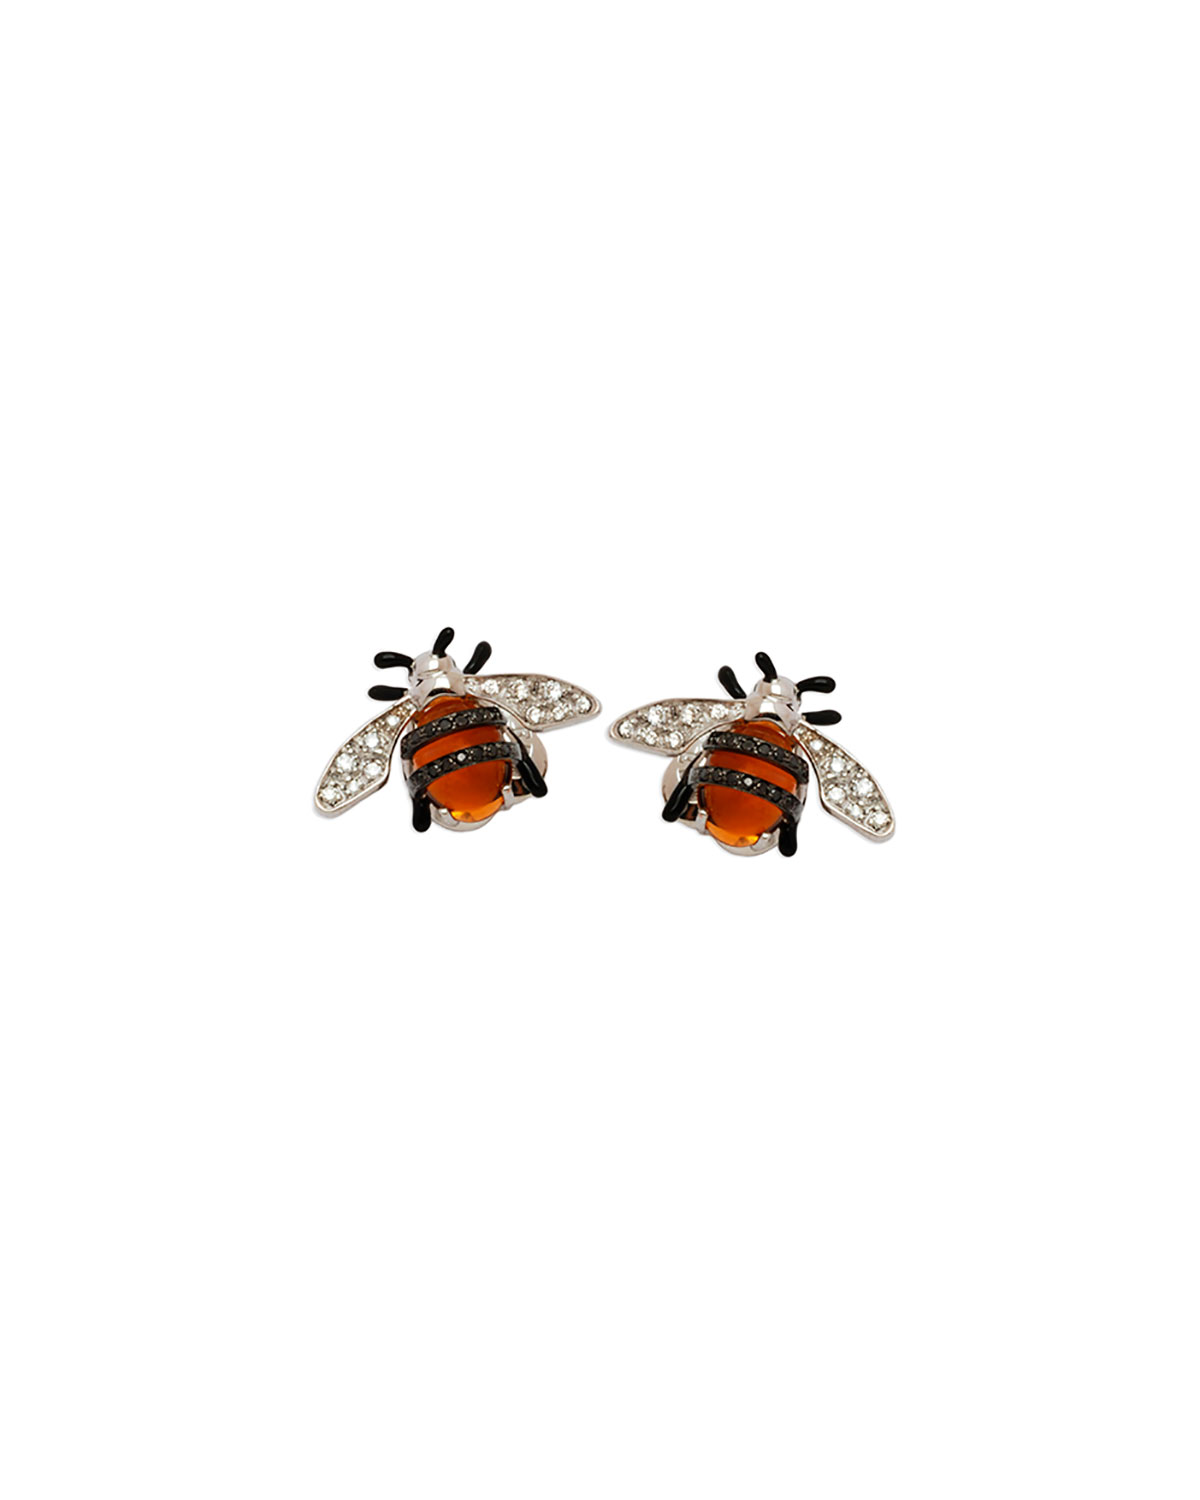 Staurino Fratelli 18k Nature Bumble Bee Stud Earrings 5GdJXj0